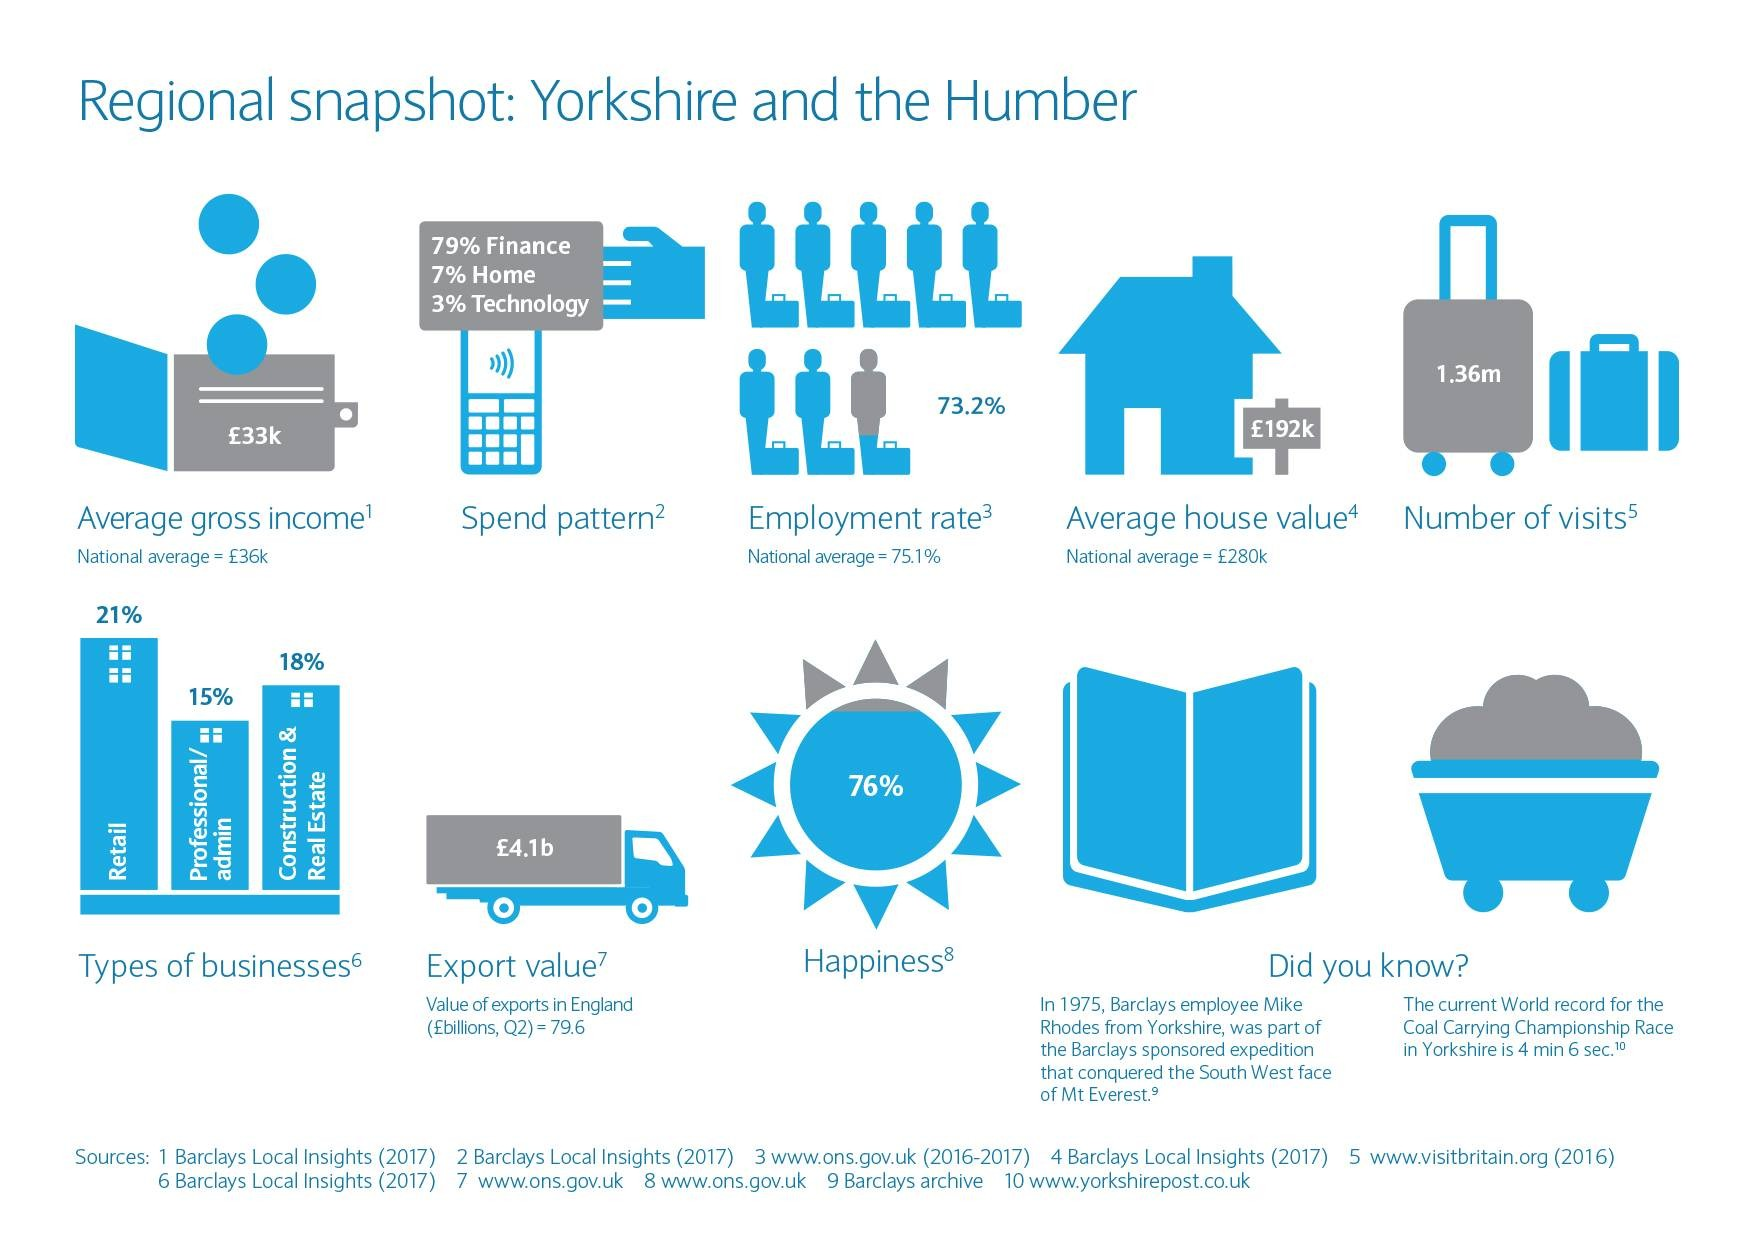 Yorkshire and the Humber regional snapshot